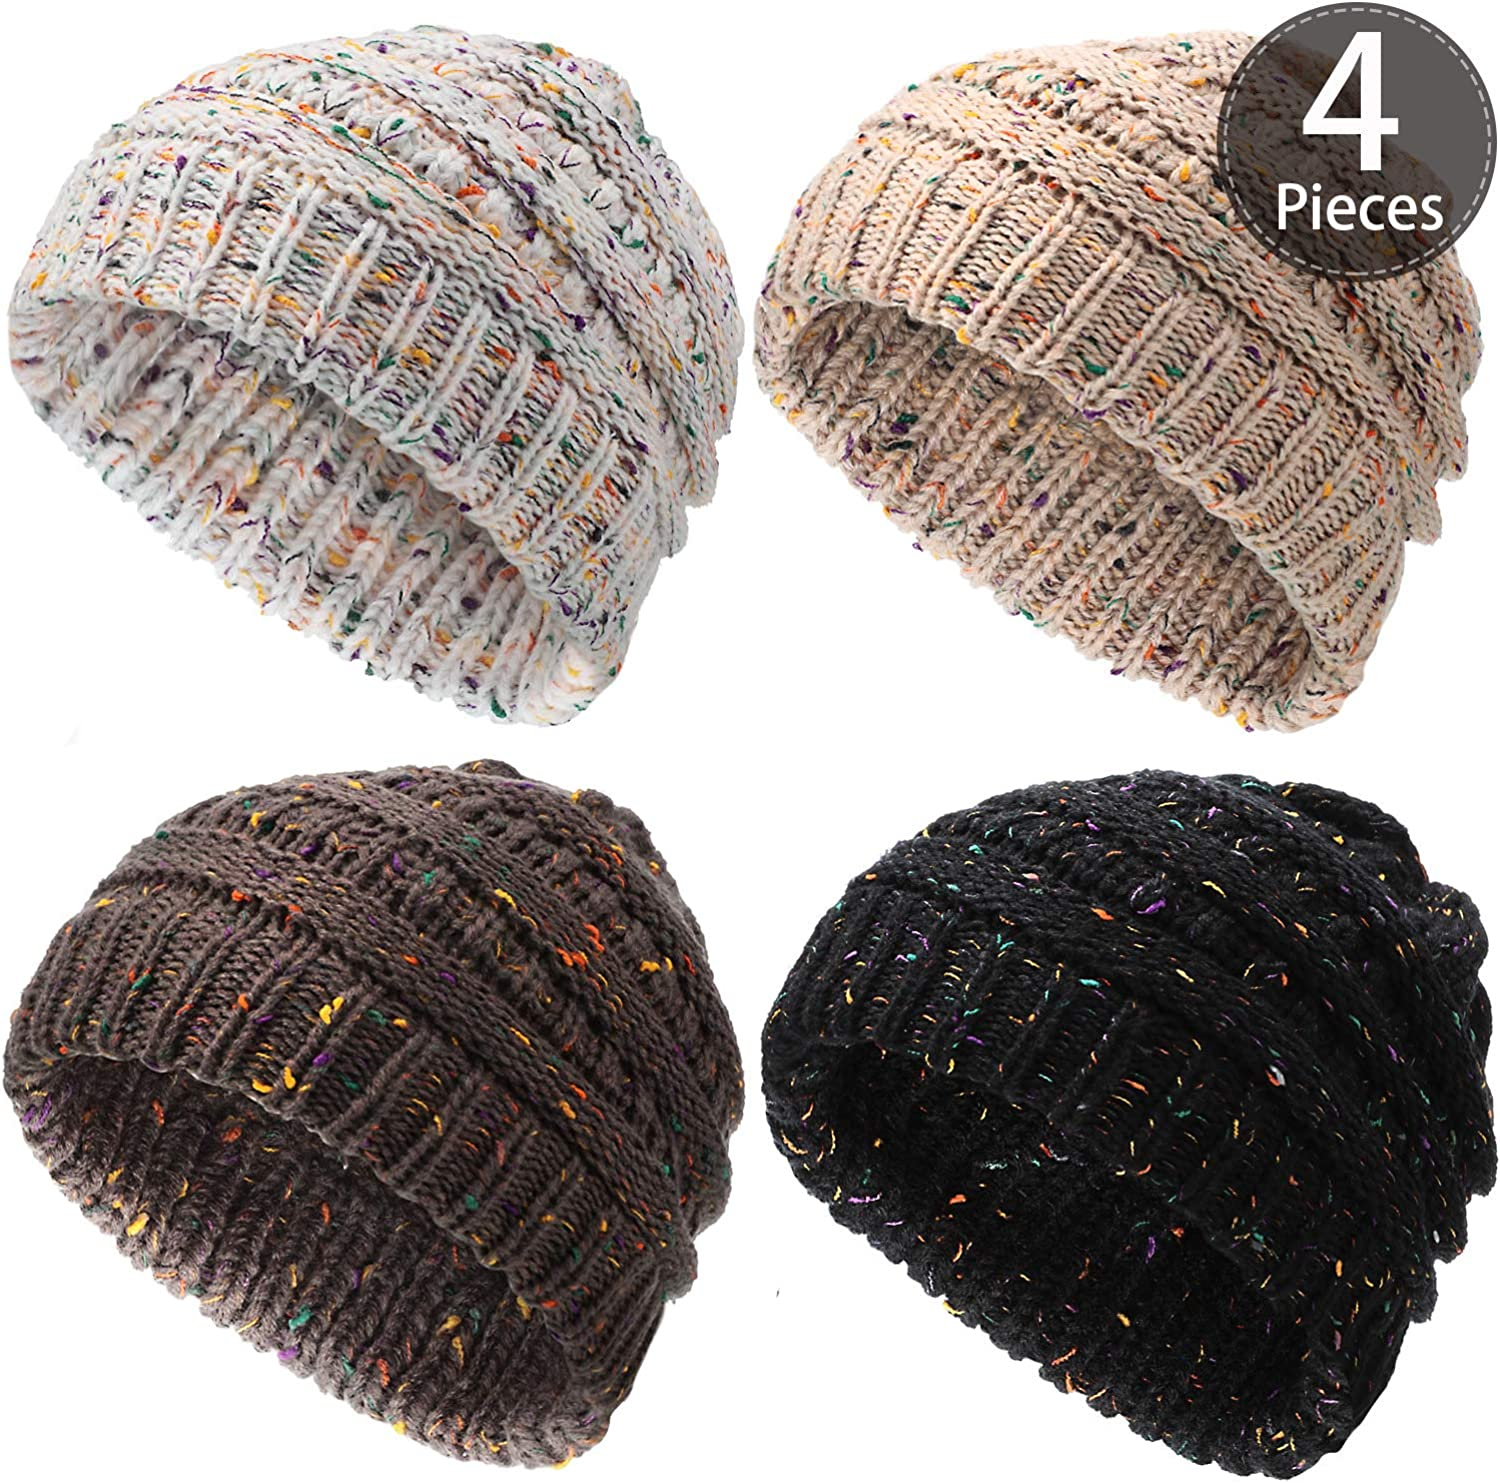 SATINIOR 4 Pieces Confetti Knit Beanie Hat, Soft Warm Winter Cable Knit Beanie Skully Stretch Thick Chunky Cap Slouchy Hat for Women Men